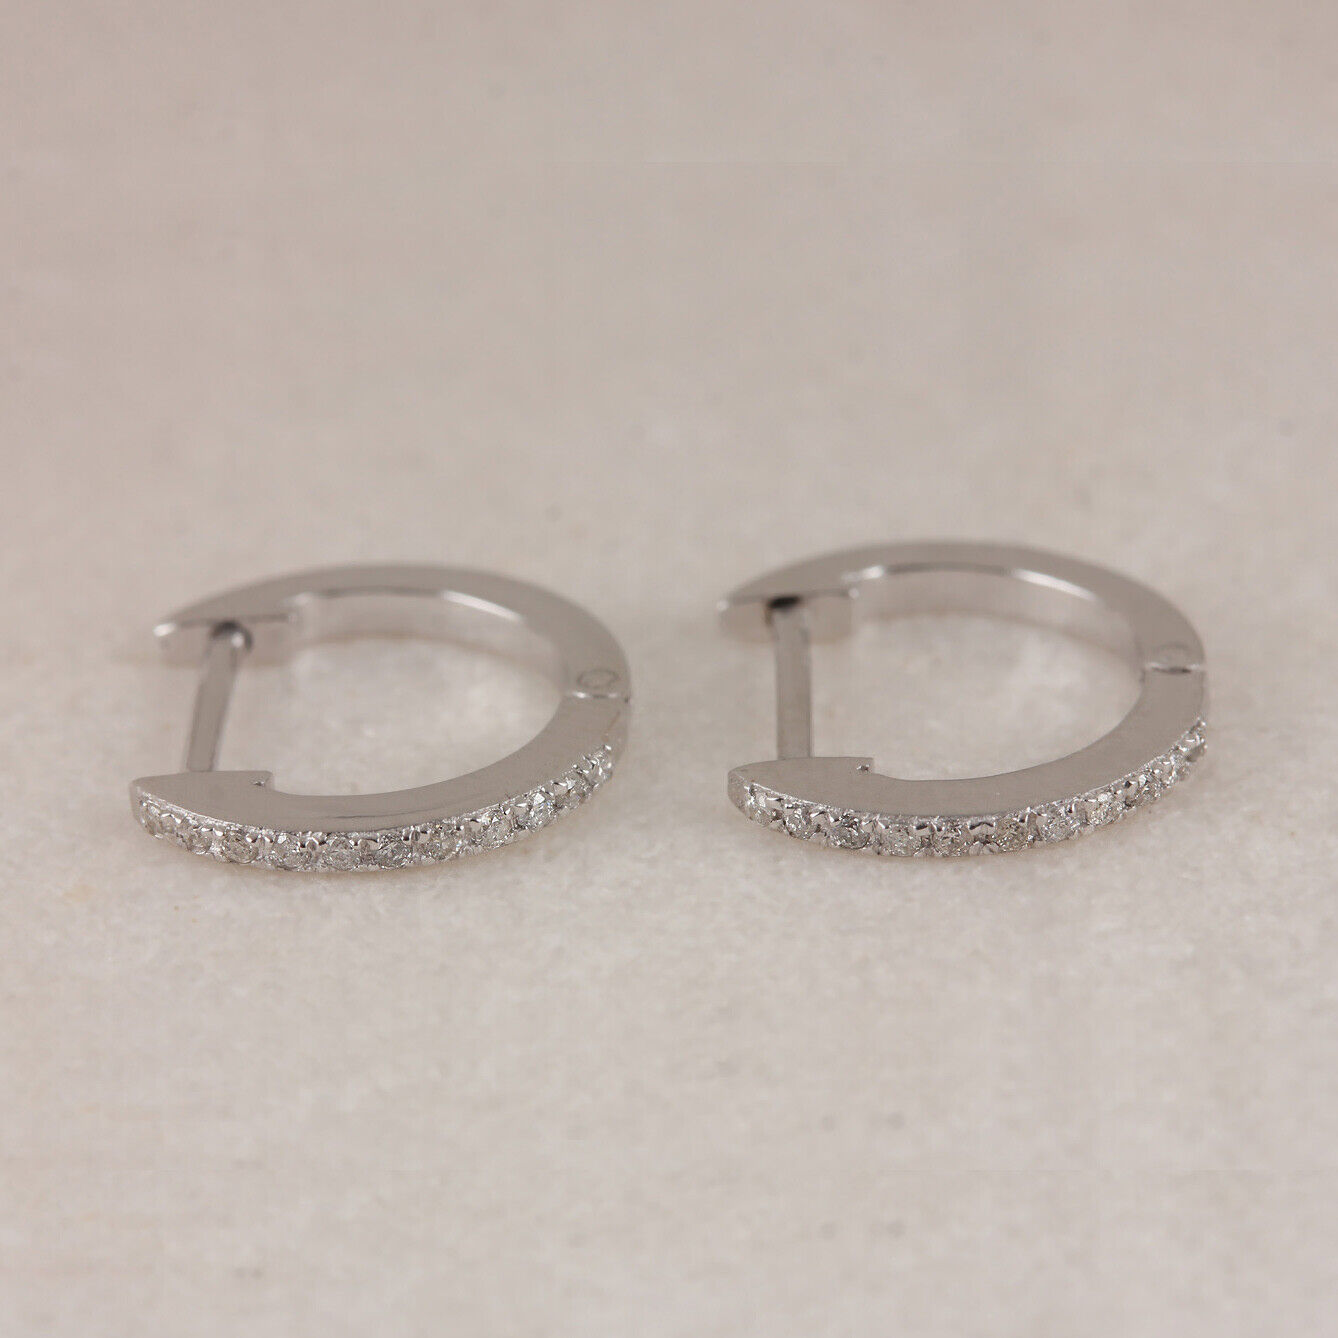 0.25 Ct Round Cut Natural Diamond Multi Row Huggies Hoop Earrings 14K White Gold Plated